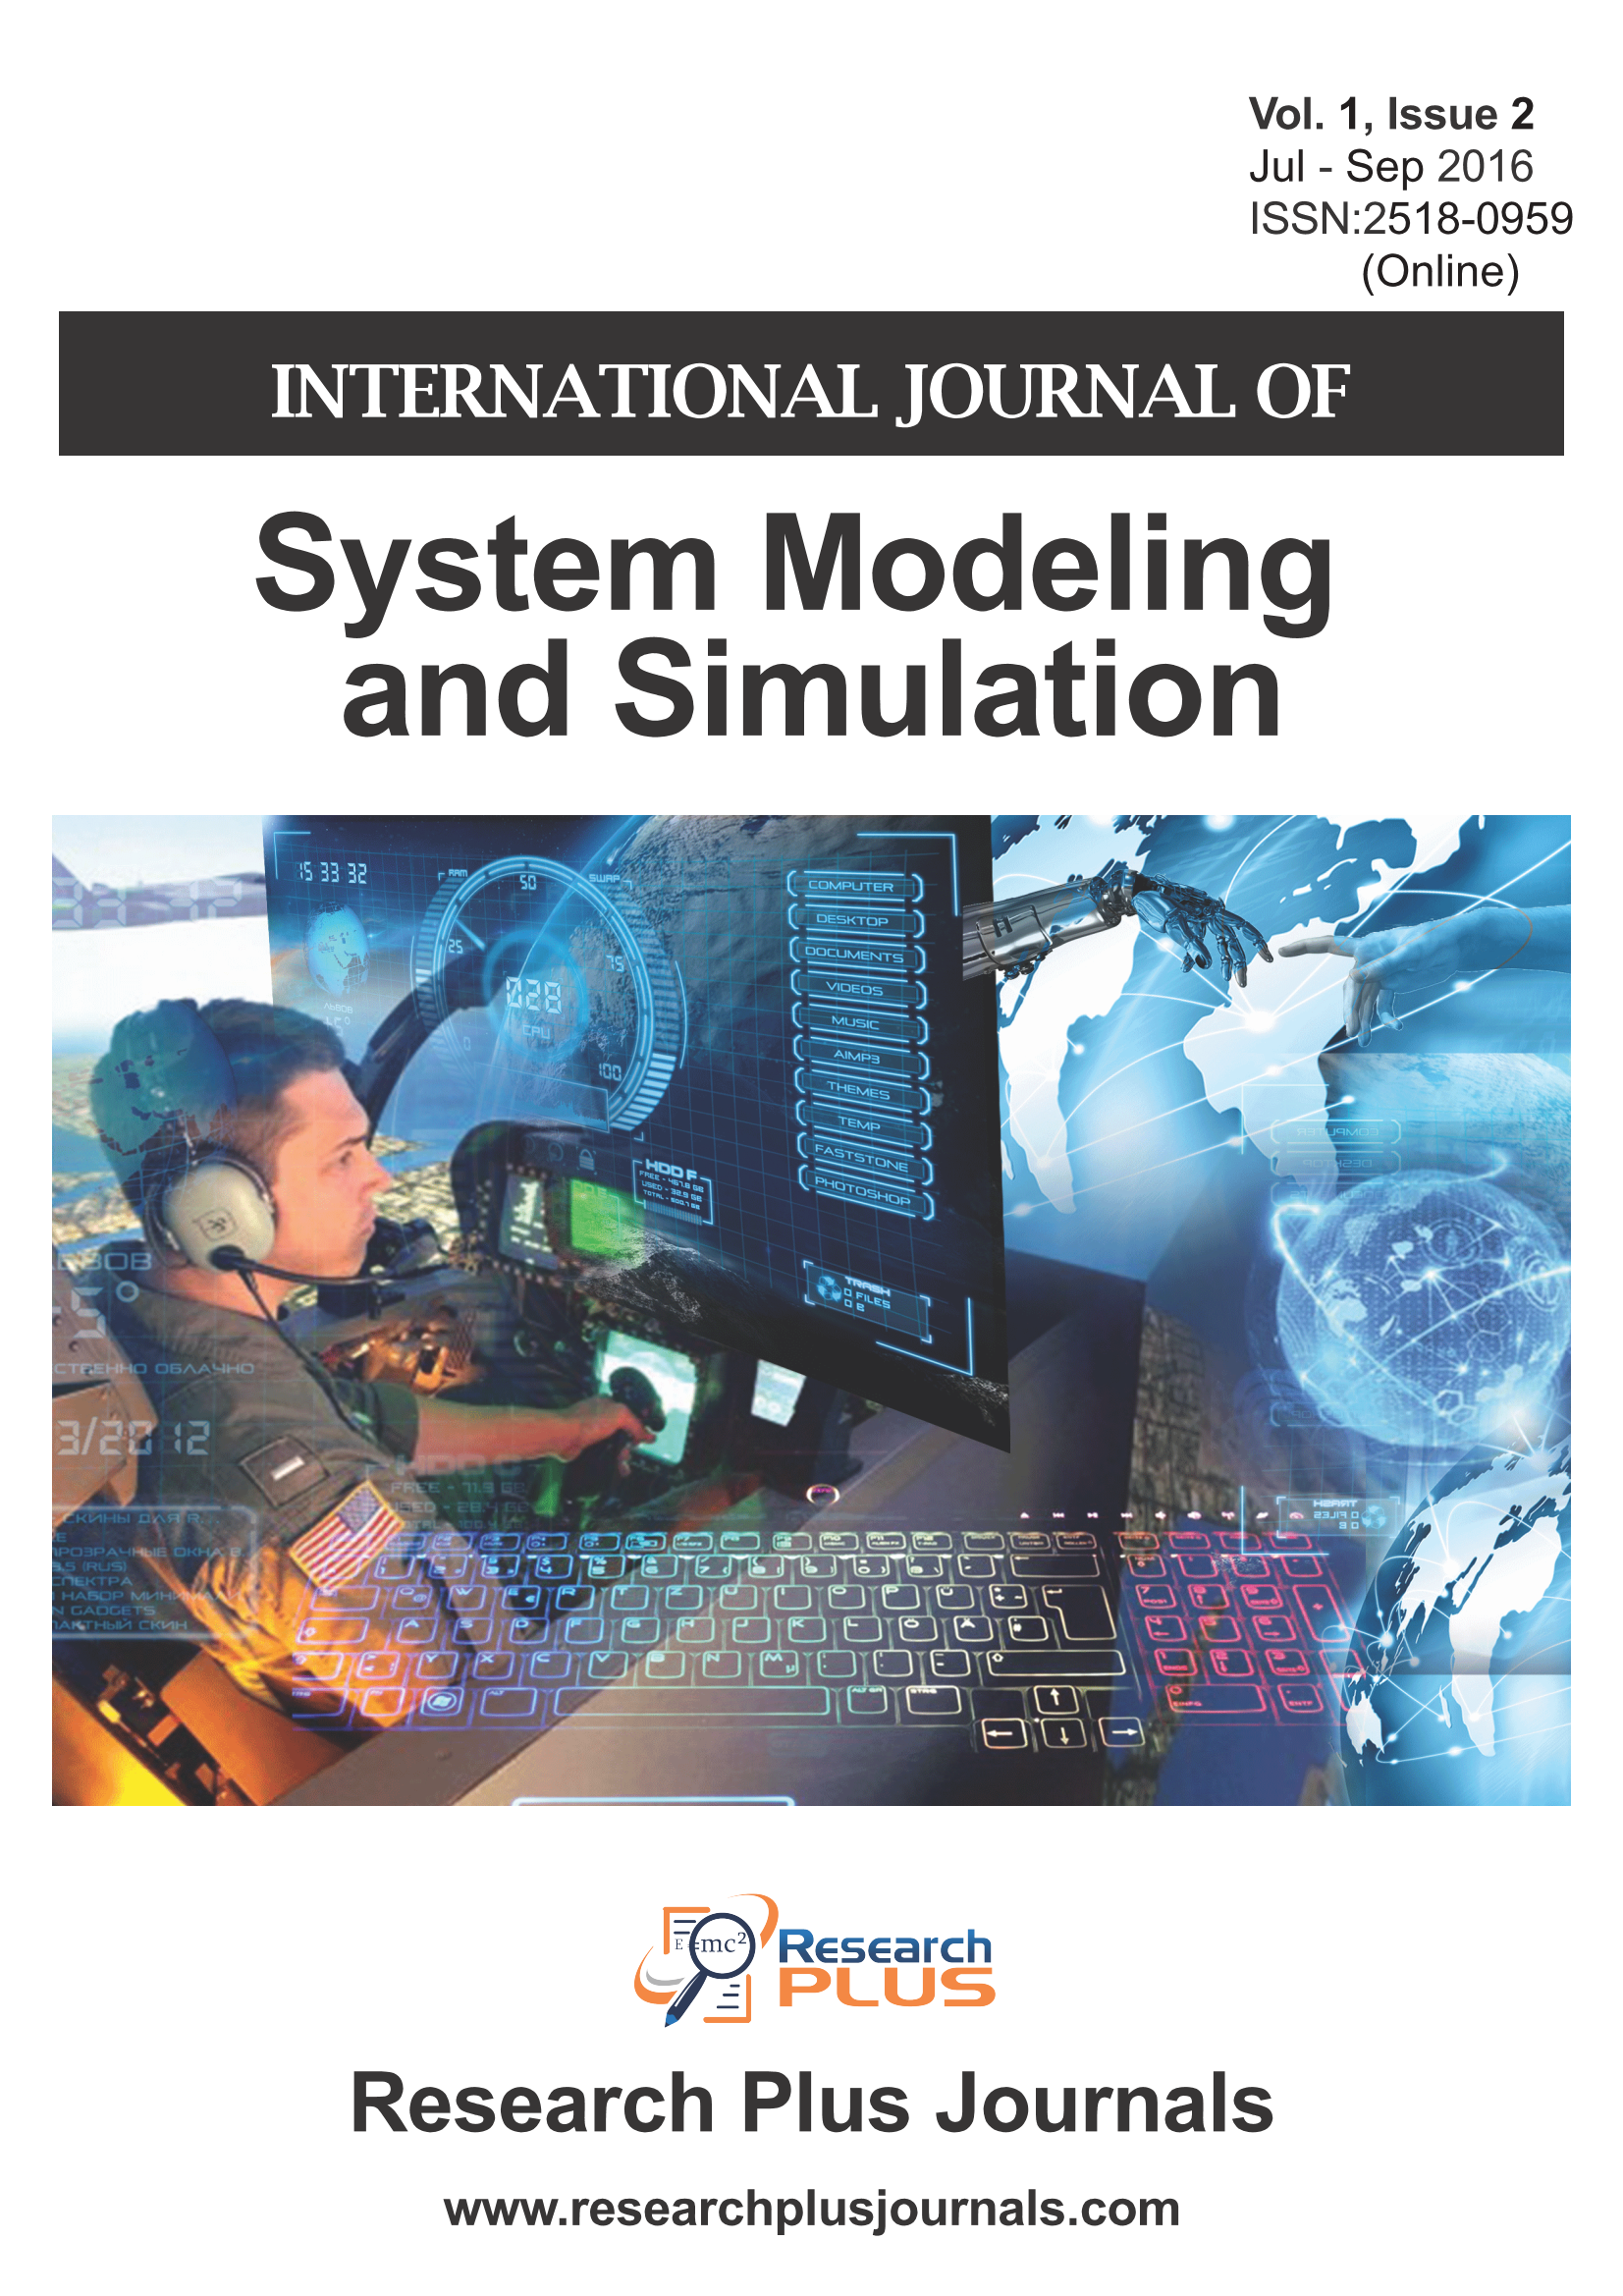 International Journal of System Modeling and Simulation (ISSN Online: 2518-0959) - Vol.1 Issue 2